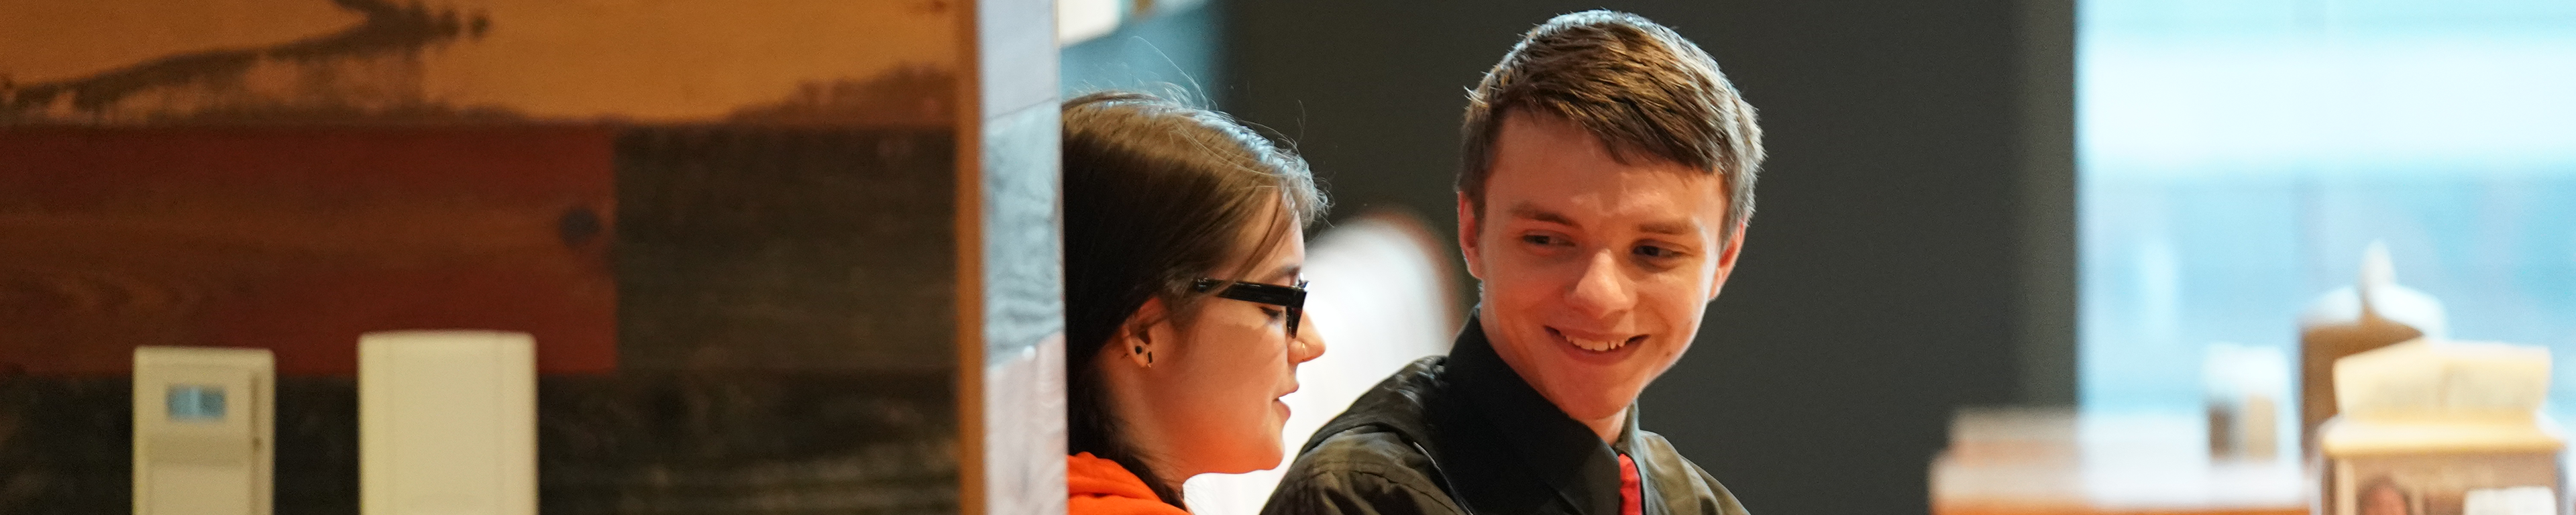 Banner image: two students having a fun conversation while sitting at a table